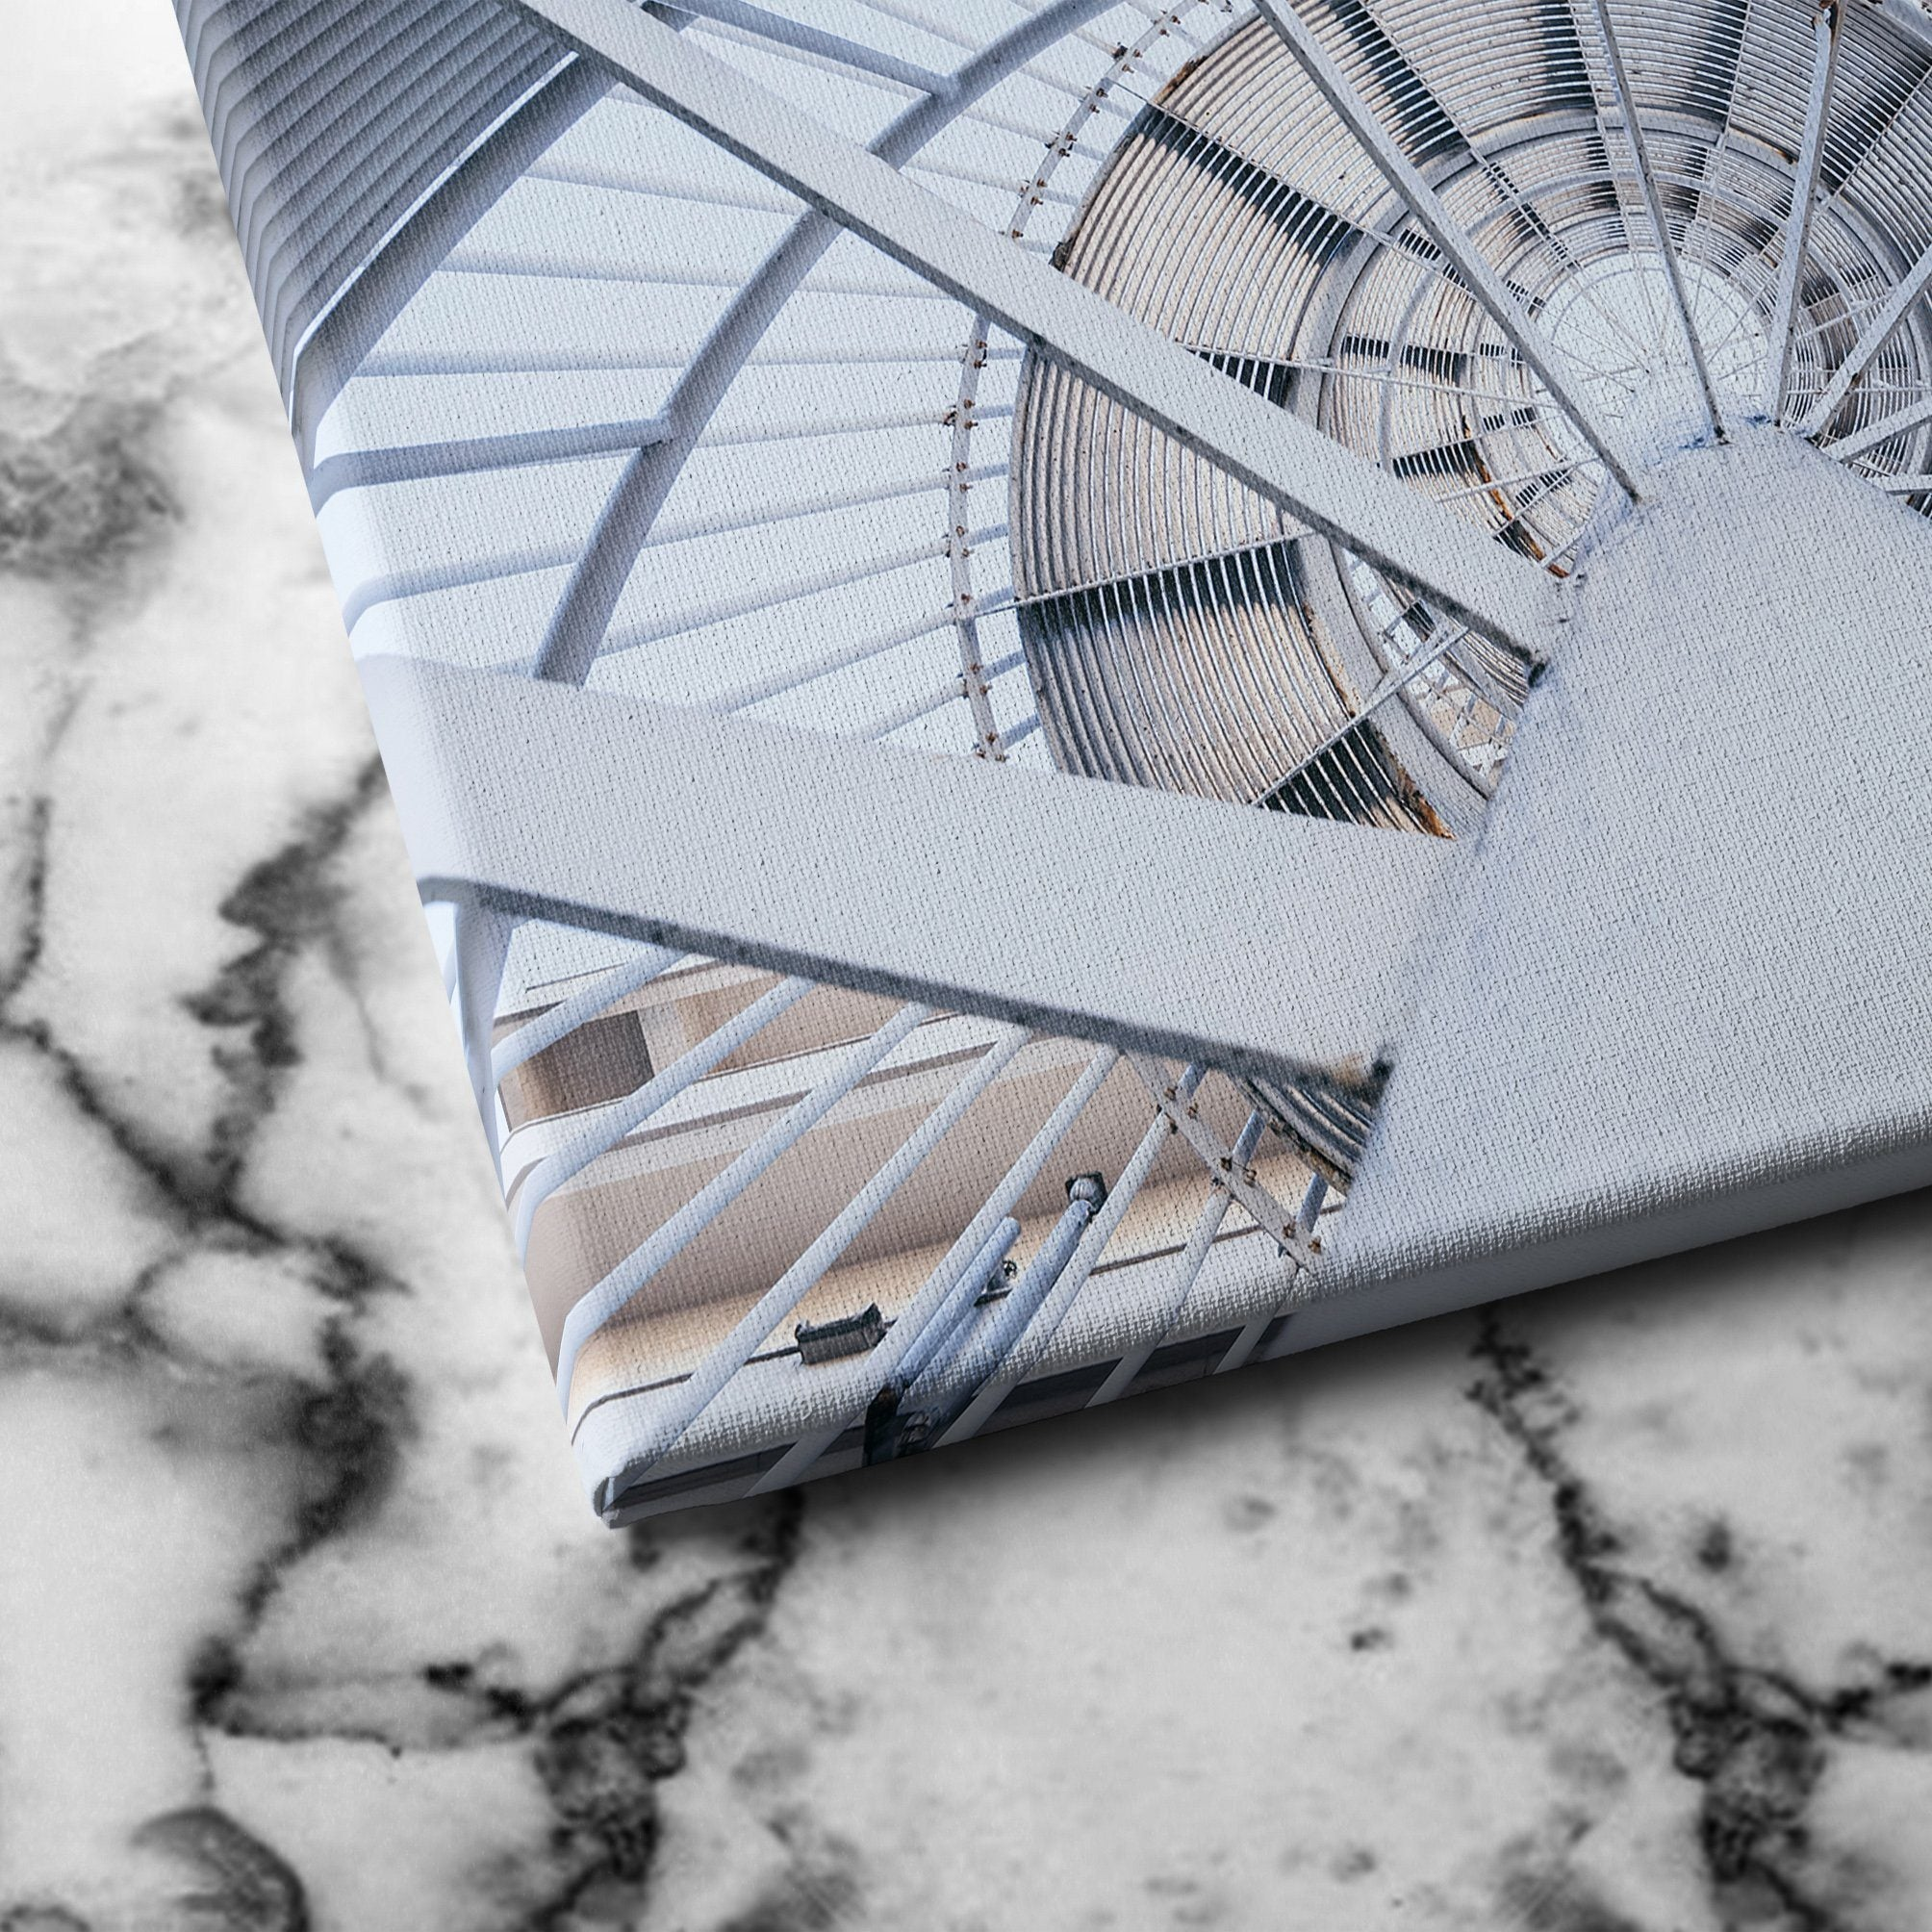 Spinning Steel Staircase canvas art